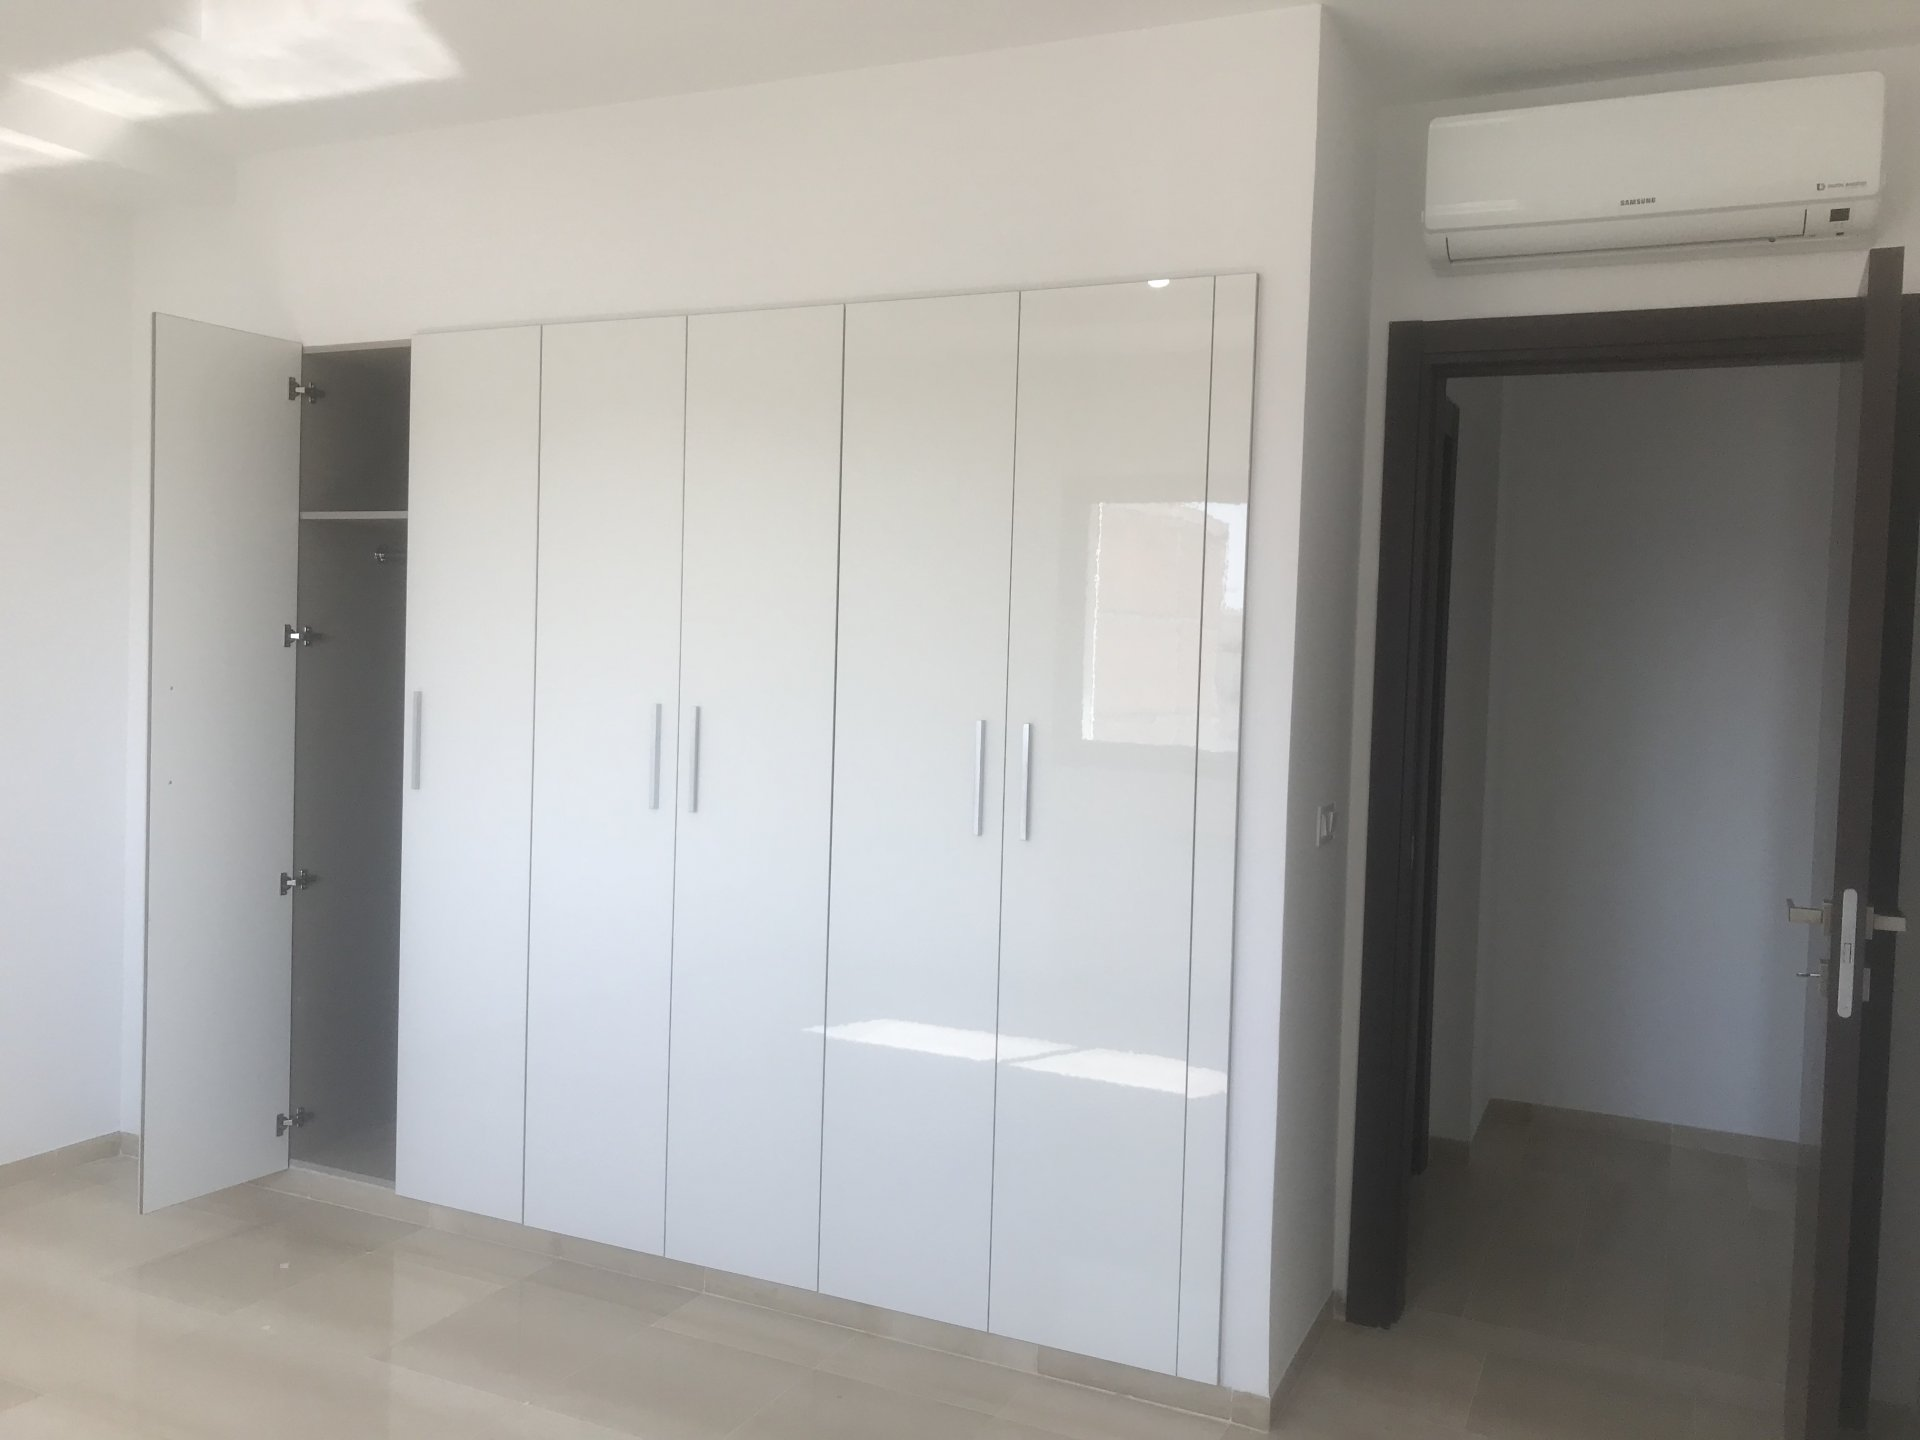 Location Appartement S+2 Neuf Ain Zaghouan Nord